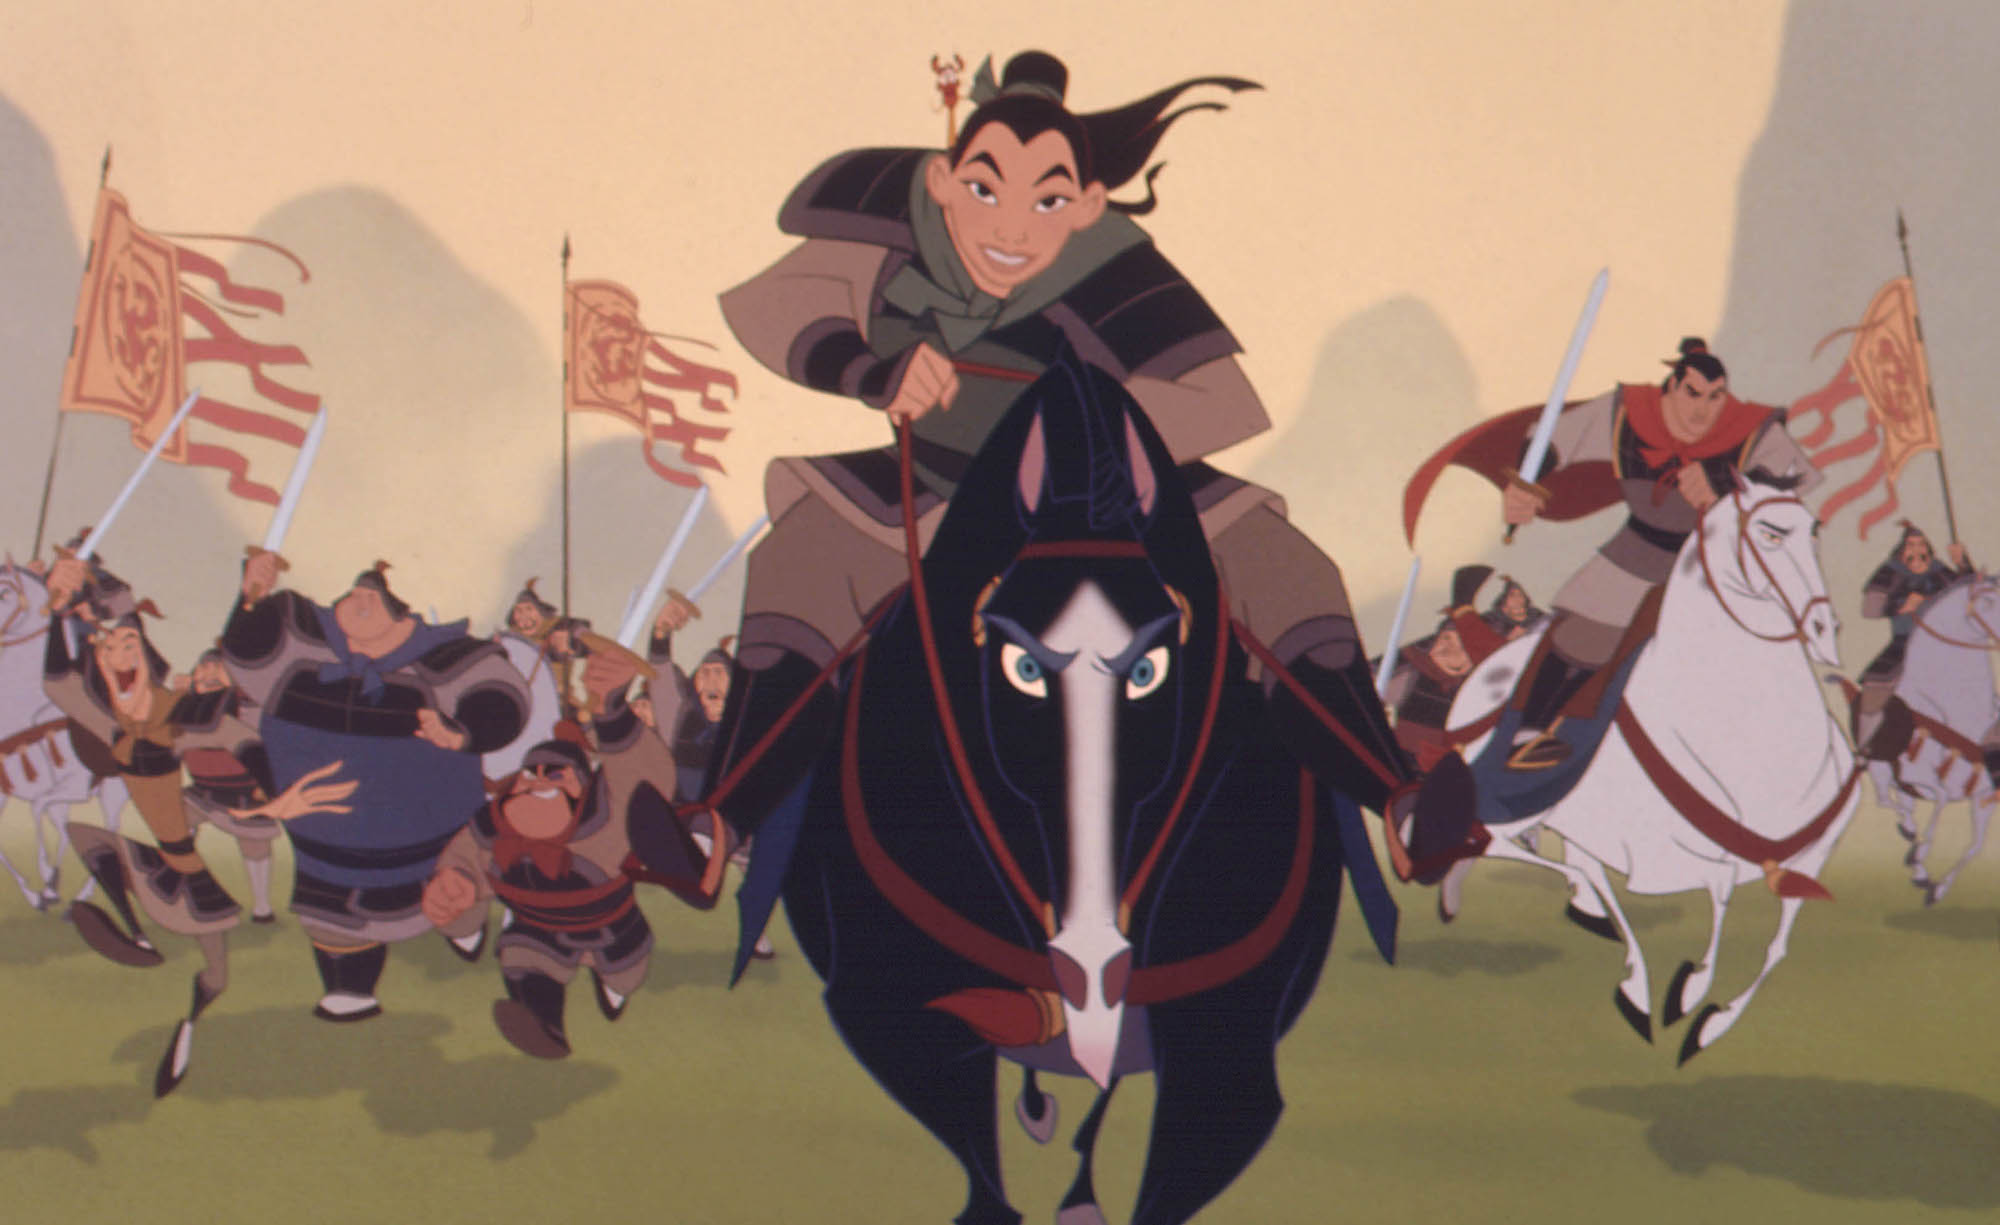 The live action Mulan film has scrapped Captain Shang for a new love interest